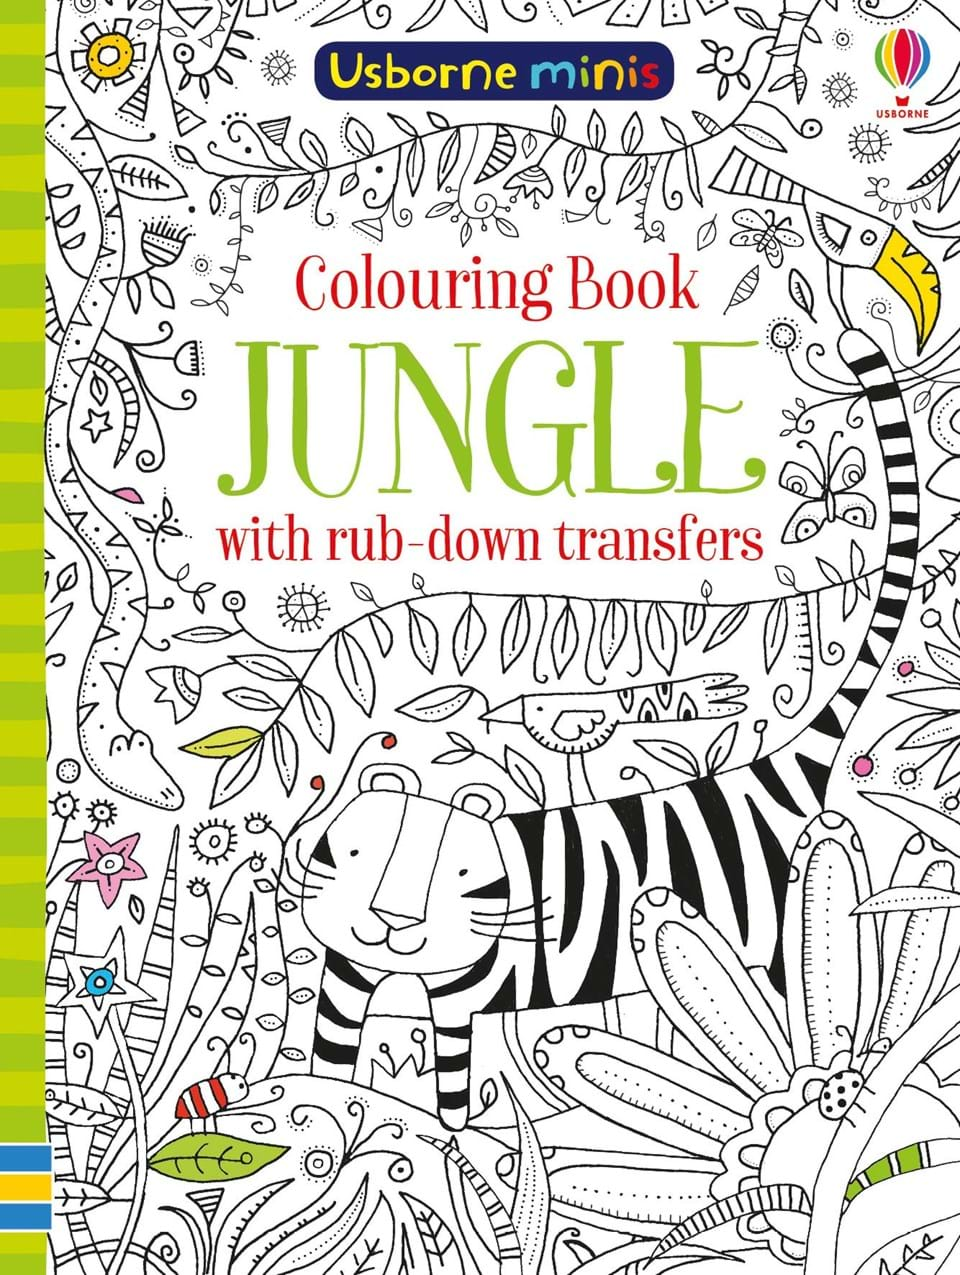 Colouring book jungle with rub-down transfers celtic patterns to colour